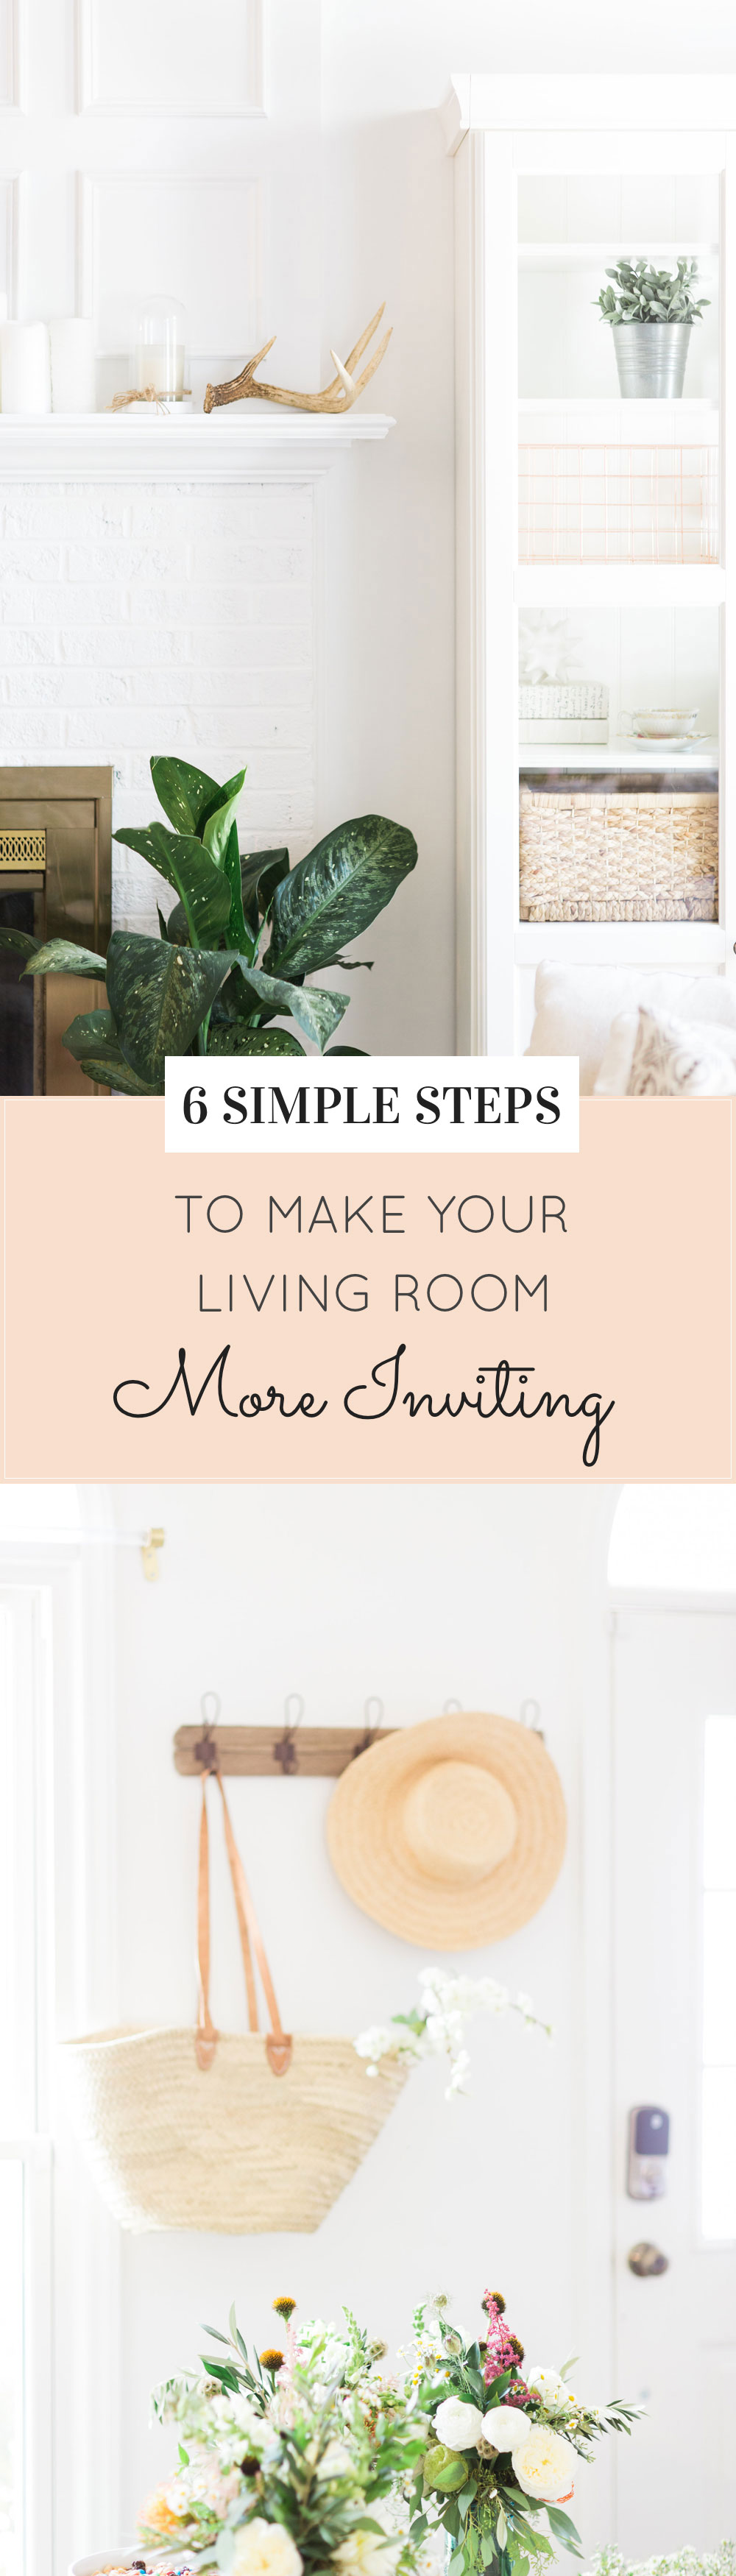 Lifestyle and home décor blogger Lexi of Glitter, Inc. shares 6 ways to make your living room more inviting. Click through for the details. | glitterinc.com | @glitterinc